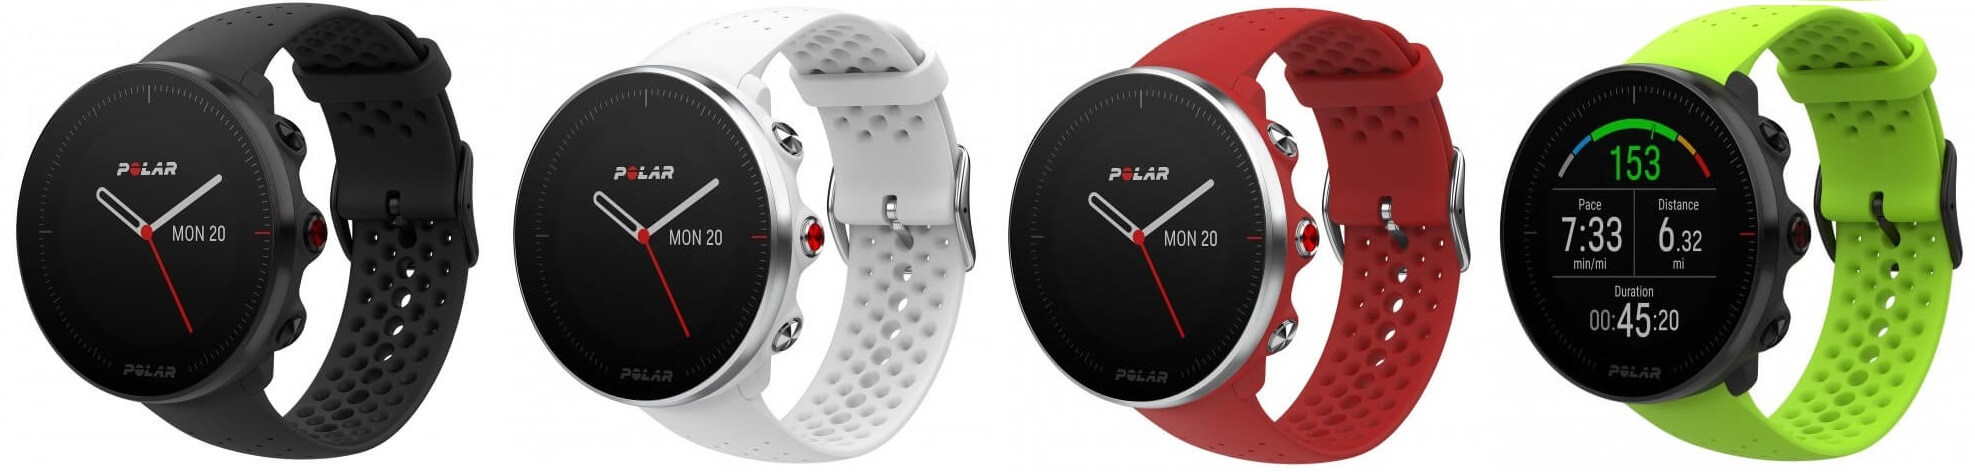 Polar Vantage M - All Colors